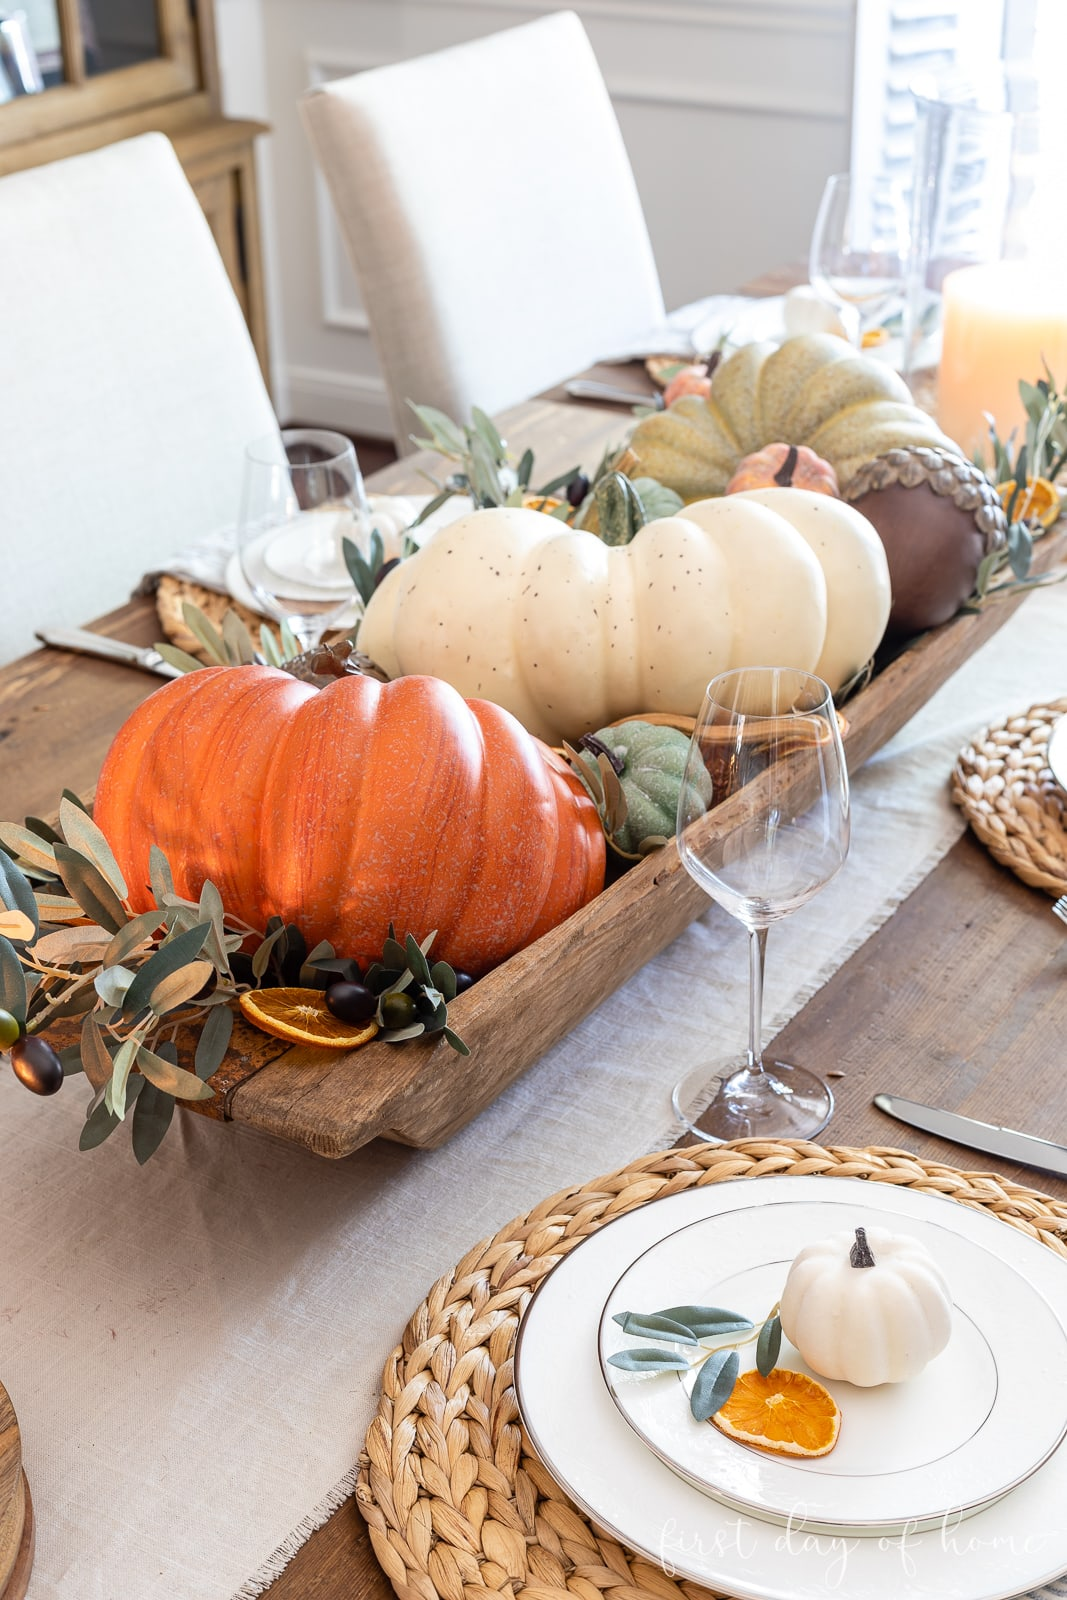 Fall table decor centerpiece with dough bowl filled with pumpkins and fall foliage